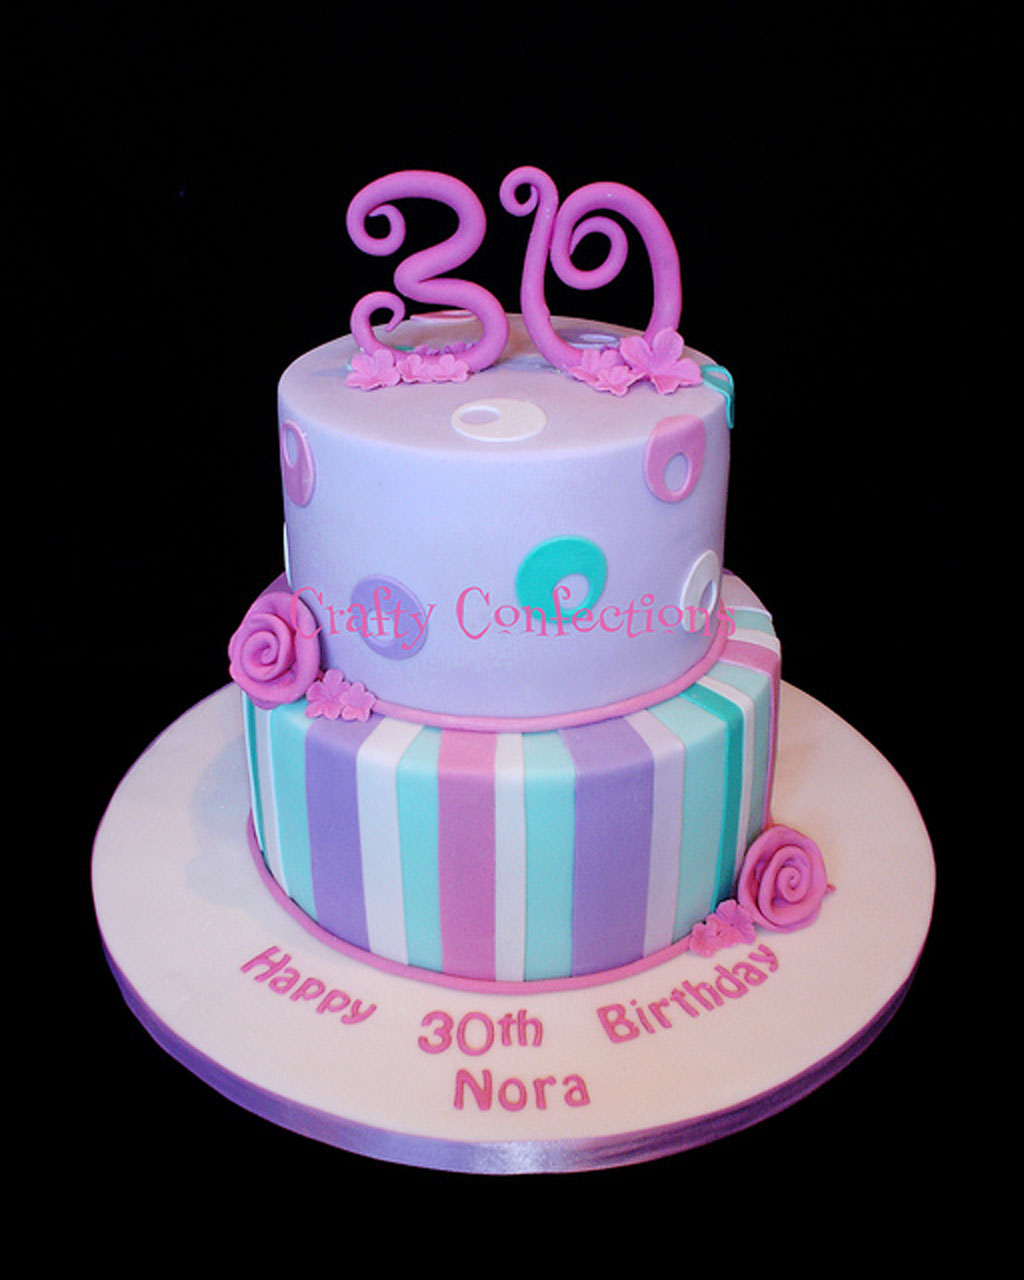 Birthday Cakes For  Year Old Woman Birthday Cake Cake Ideas By - 30 year old birthday cake